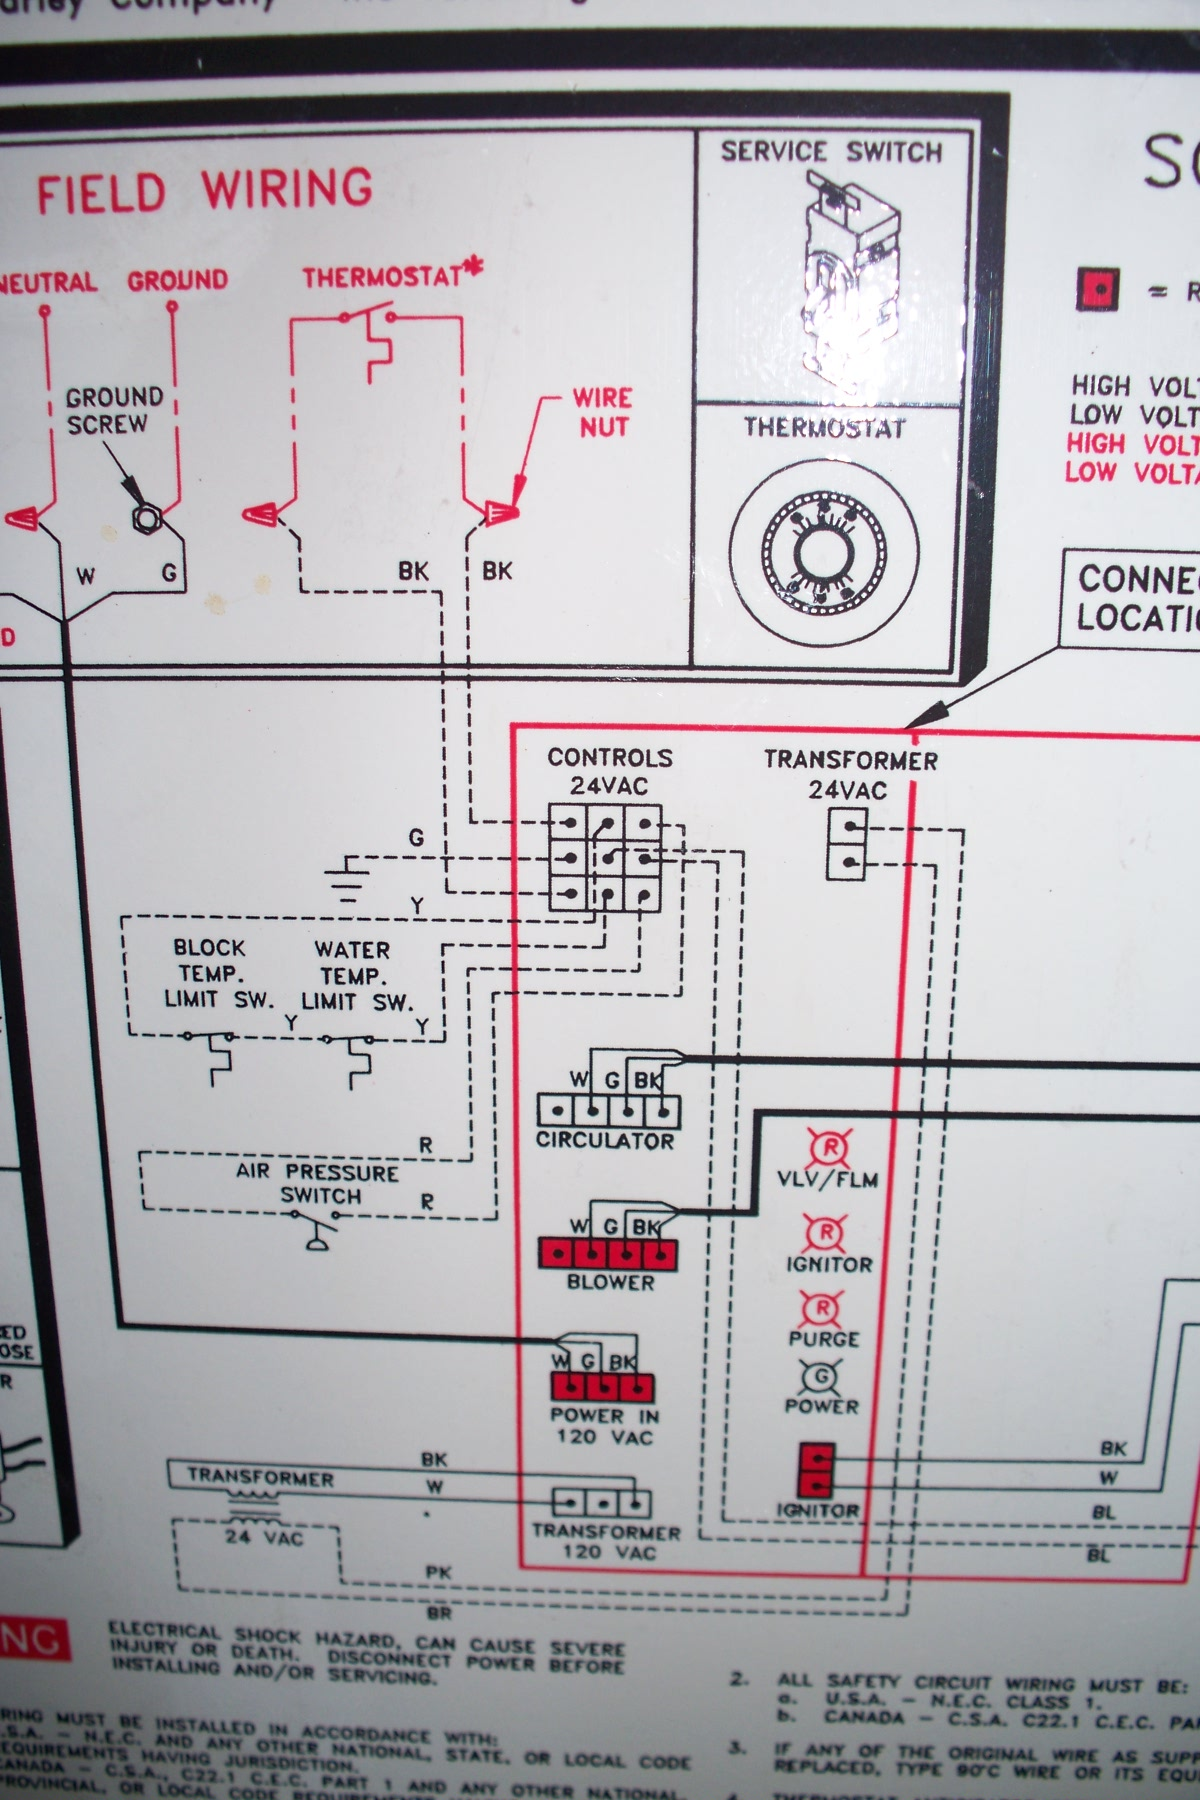 2014 01 12_010619_100_3141 i have a weil mcclain gv5 series 2 boiler with an amtrol amtrol boilermate wiring diagram at gsmportal.co